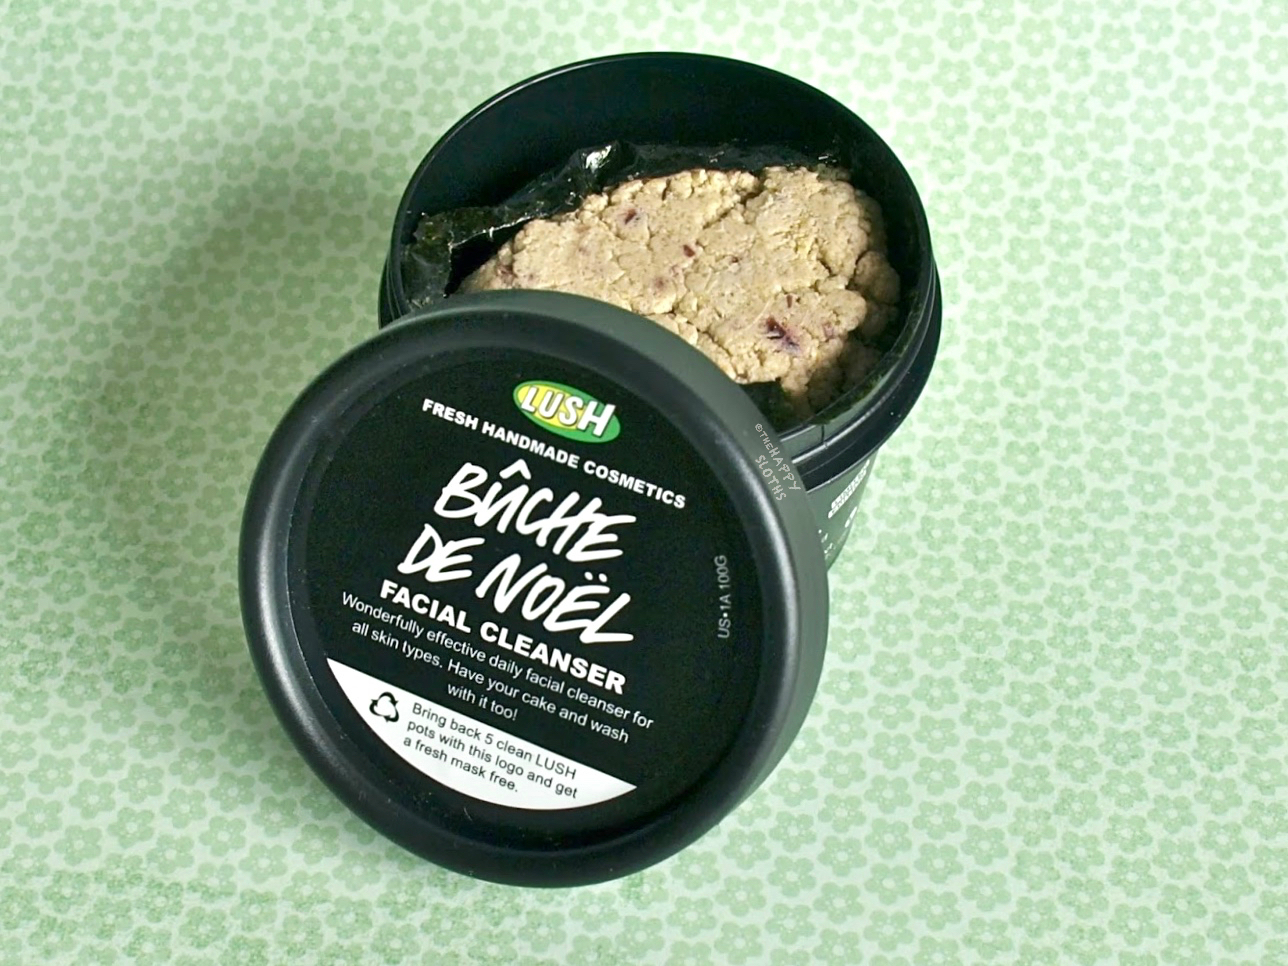 Lush Buche de Noel Facial Cleanser: Review